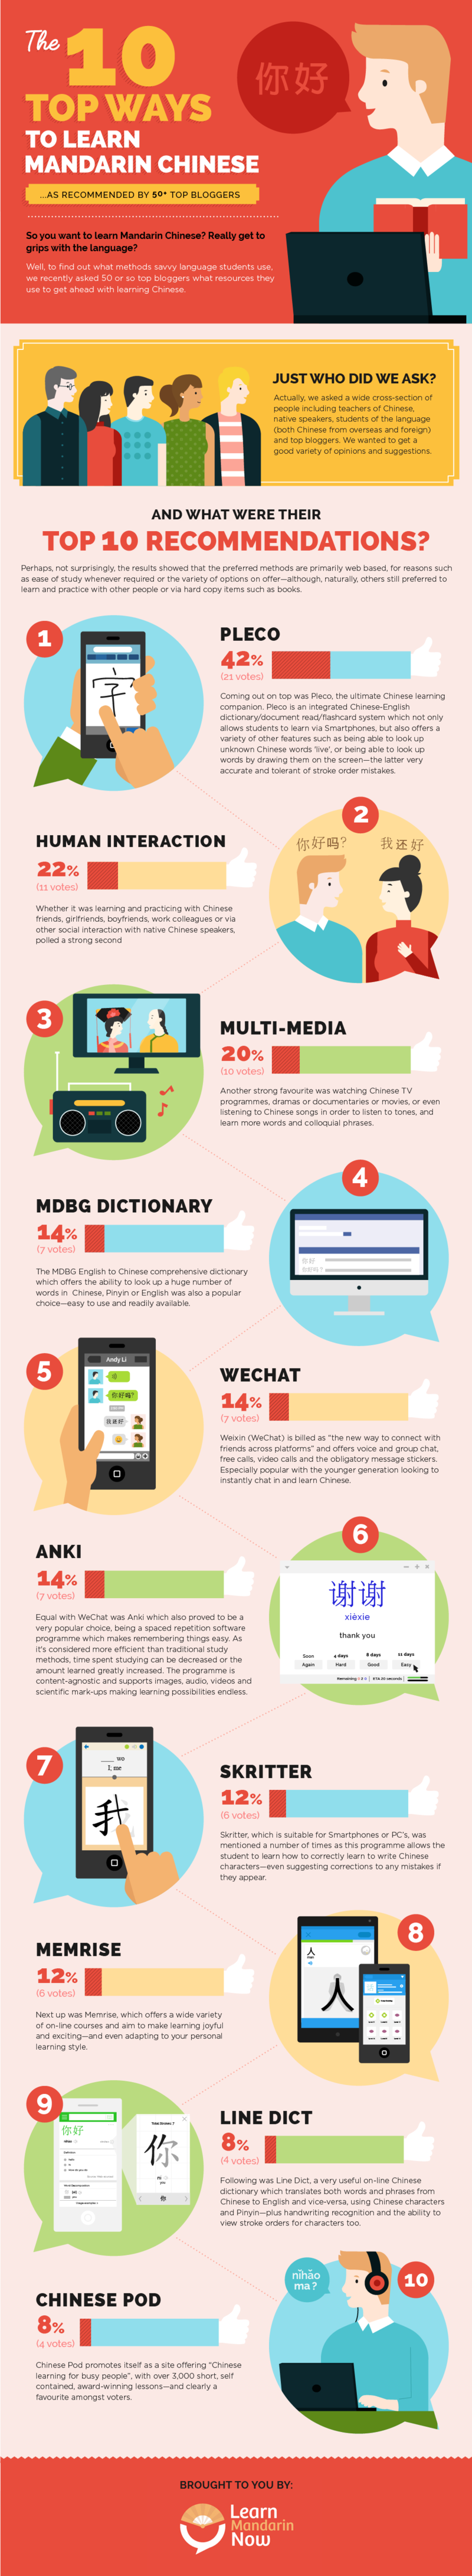 Final_Learn Mandarin Now Infographic